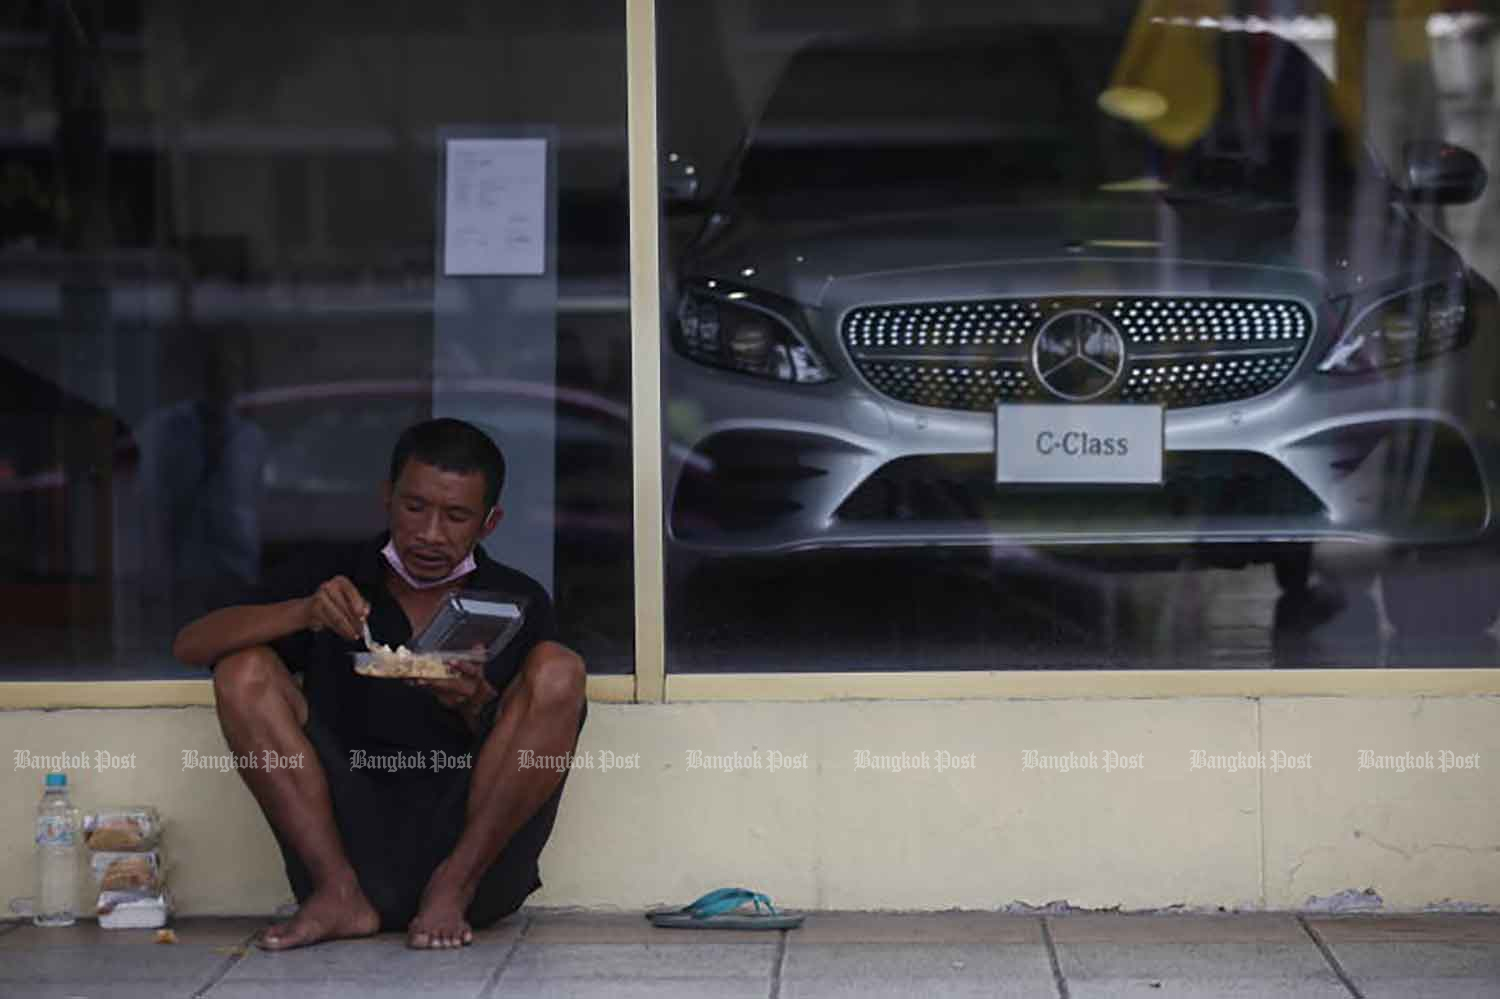 A man eats a meal outside a luxury car showroom near the Democracy Monument in Bangkok on Wednesday. The Covid-19 crisis has prompted many people to hand out food to homeless people on the streets. (Photo: Nutthawat Wicheanbut)